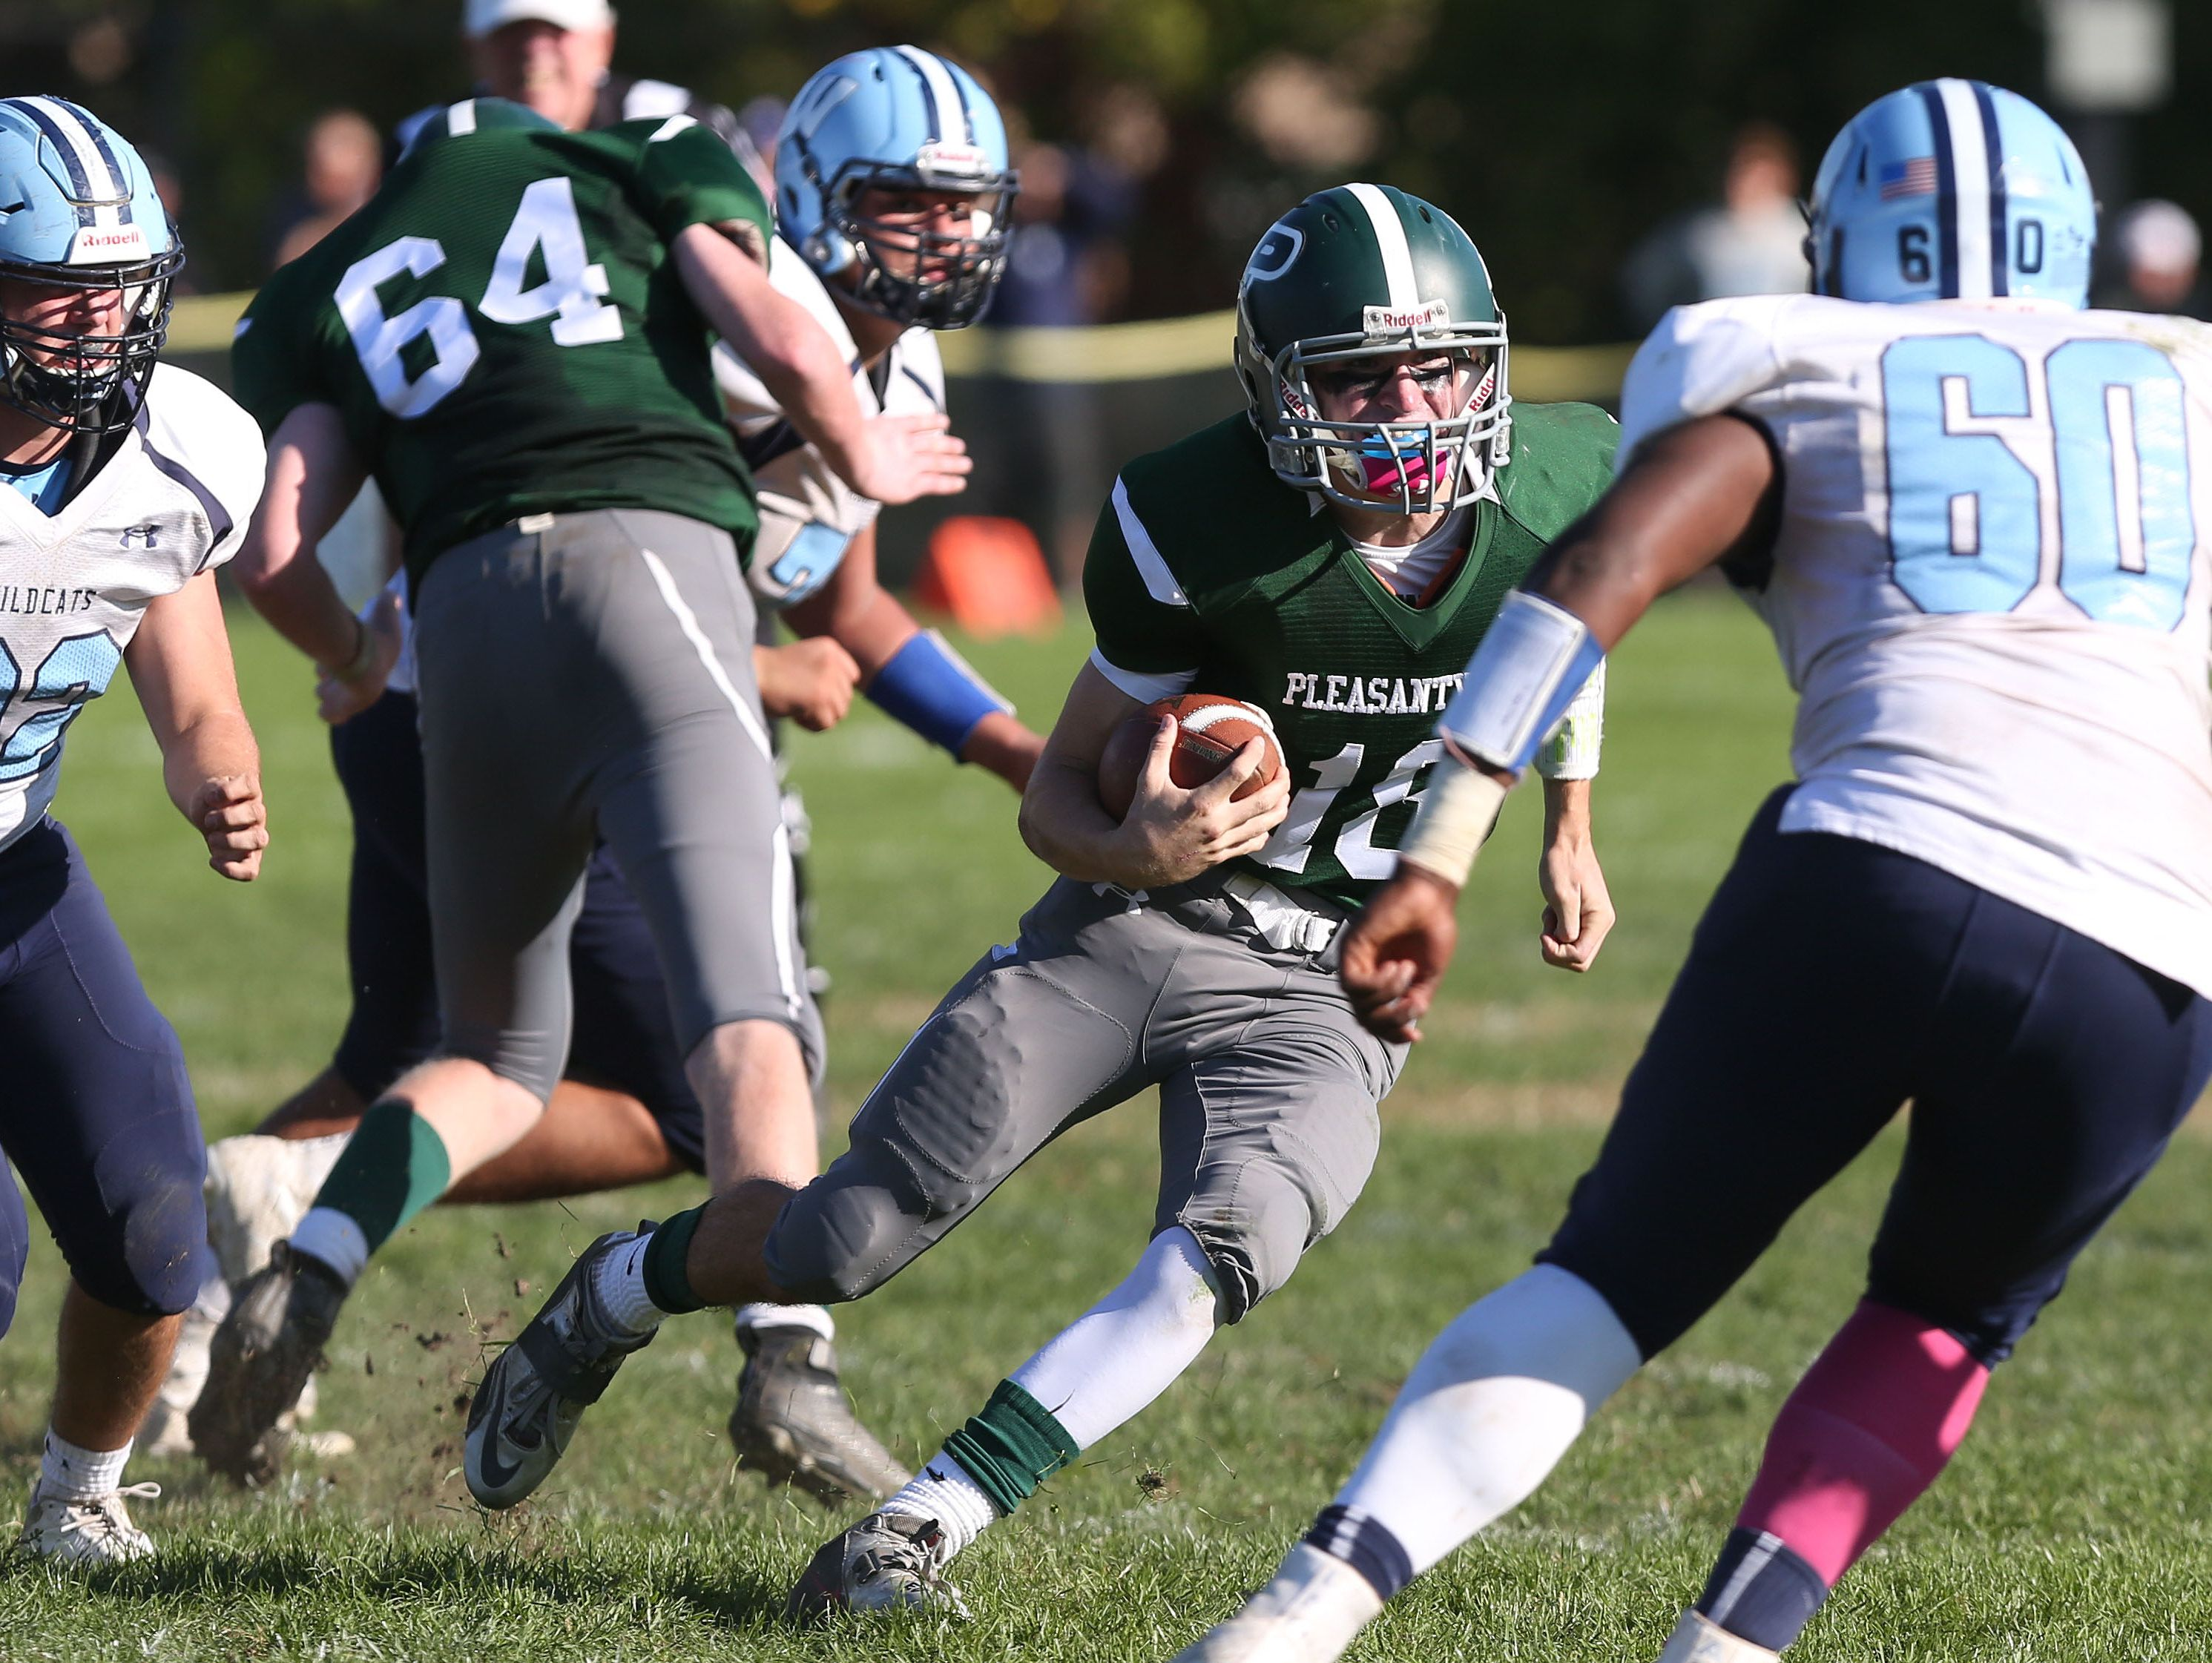 Pleasantville's Jack Howe (18) looks for some running room in the Westlake defense on a first half run during football action at Parkway Field in Pleasantville Oct. 15, 2016. Pleasantville won the game 38-35 on a last second field goal by Howe.